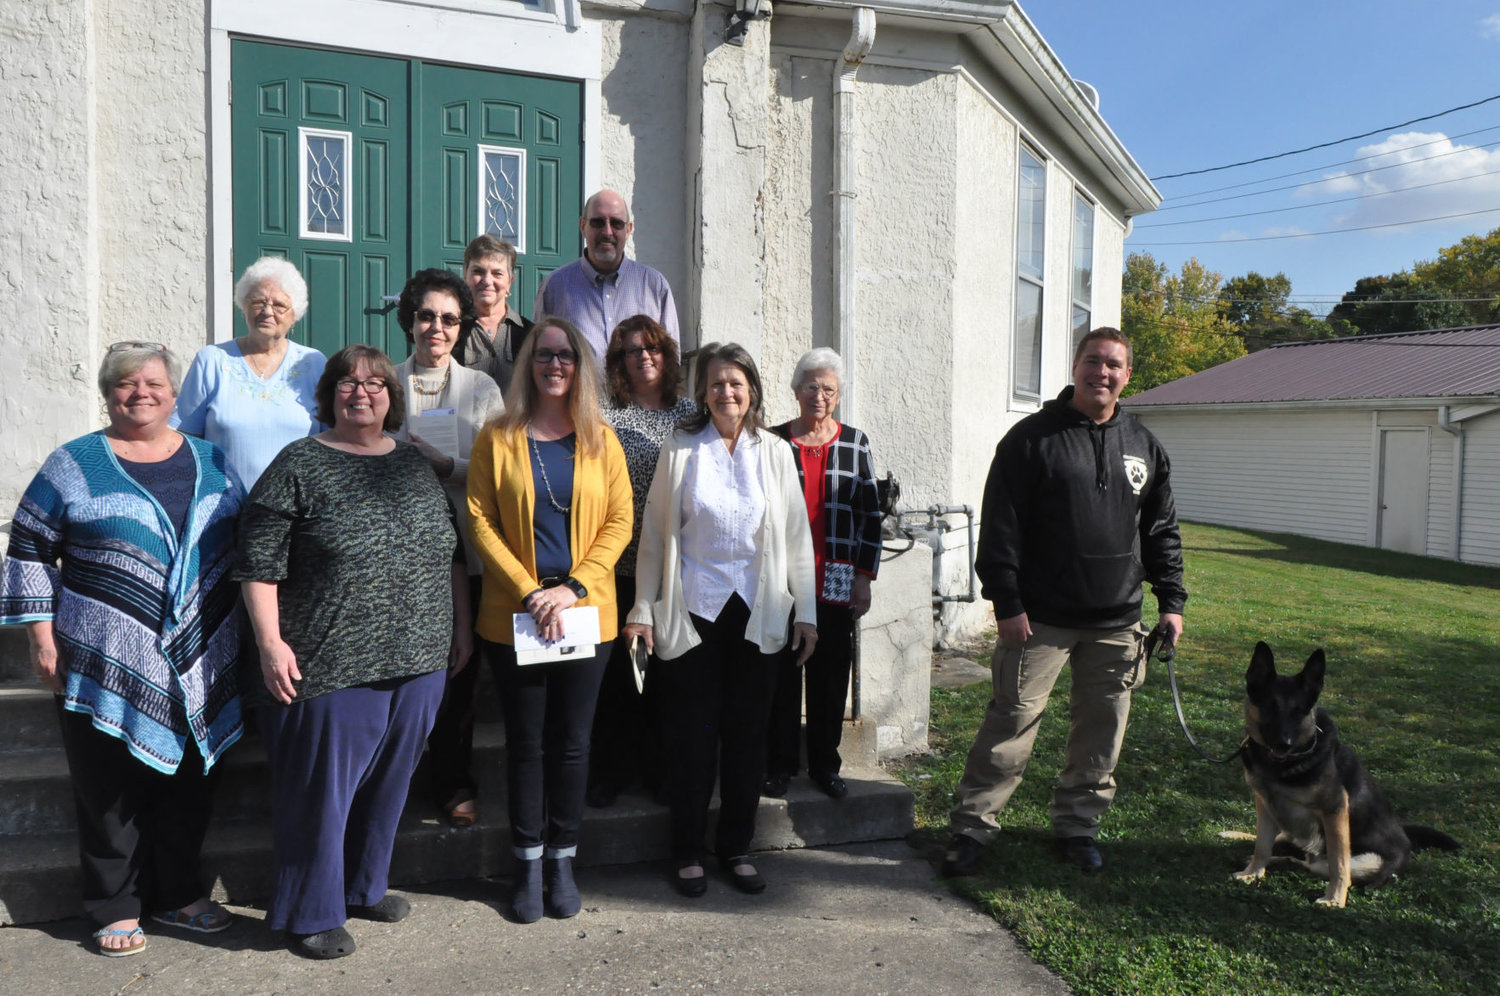 Recipients of funds from Milligan Memorial Presbyterian Church pose for a photo with church members Sunday after the final service. The church donated money to five groups.